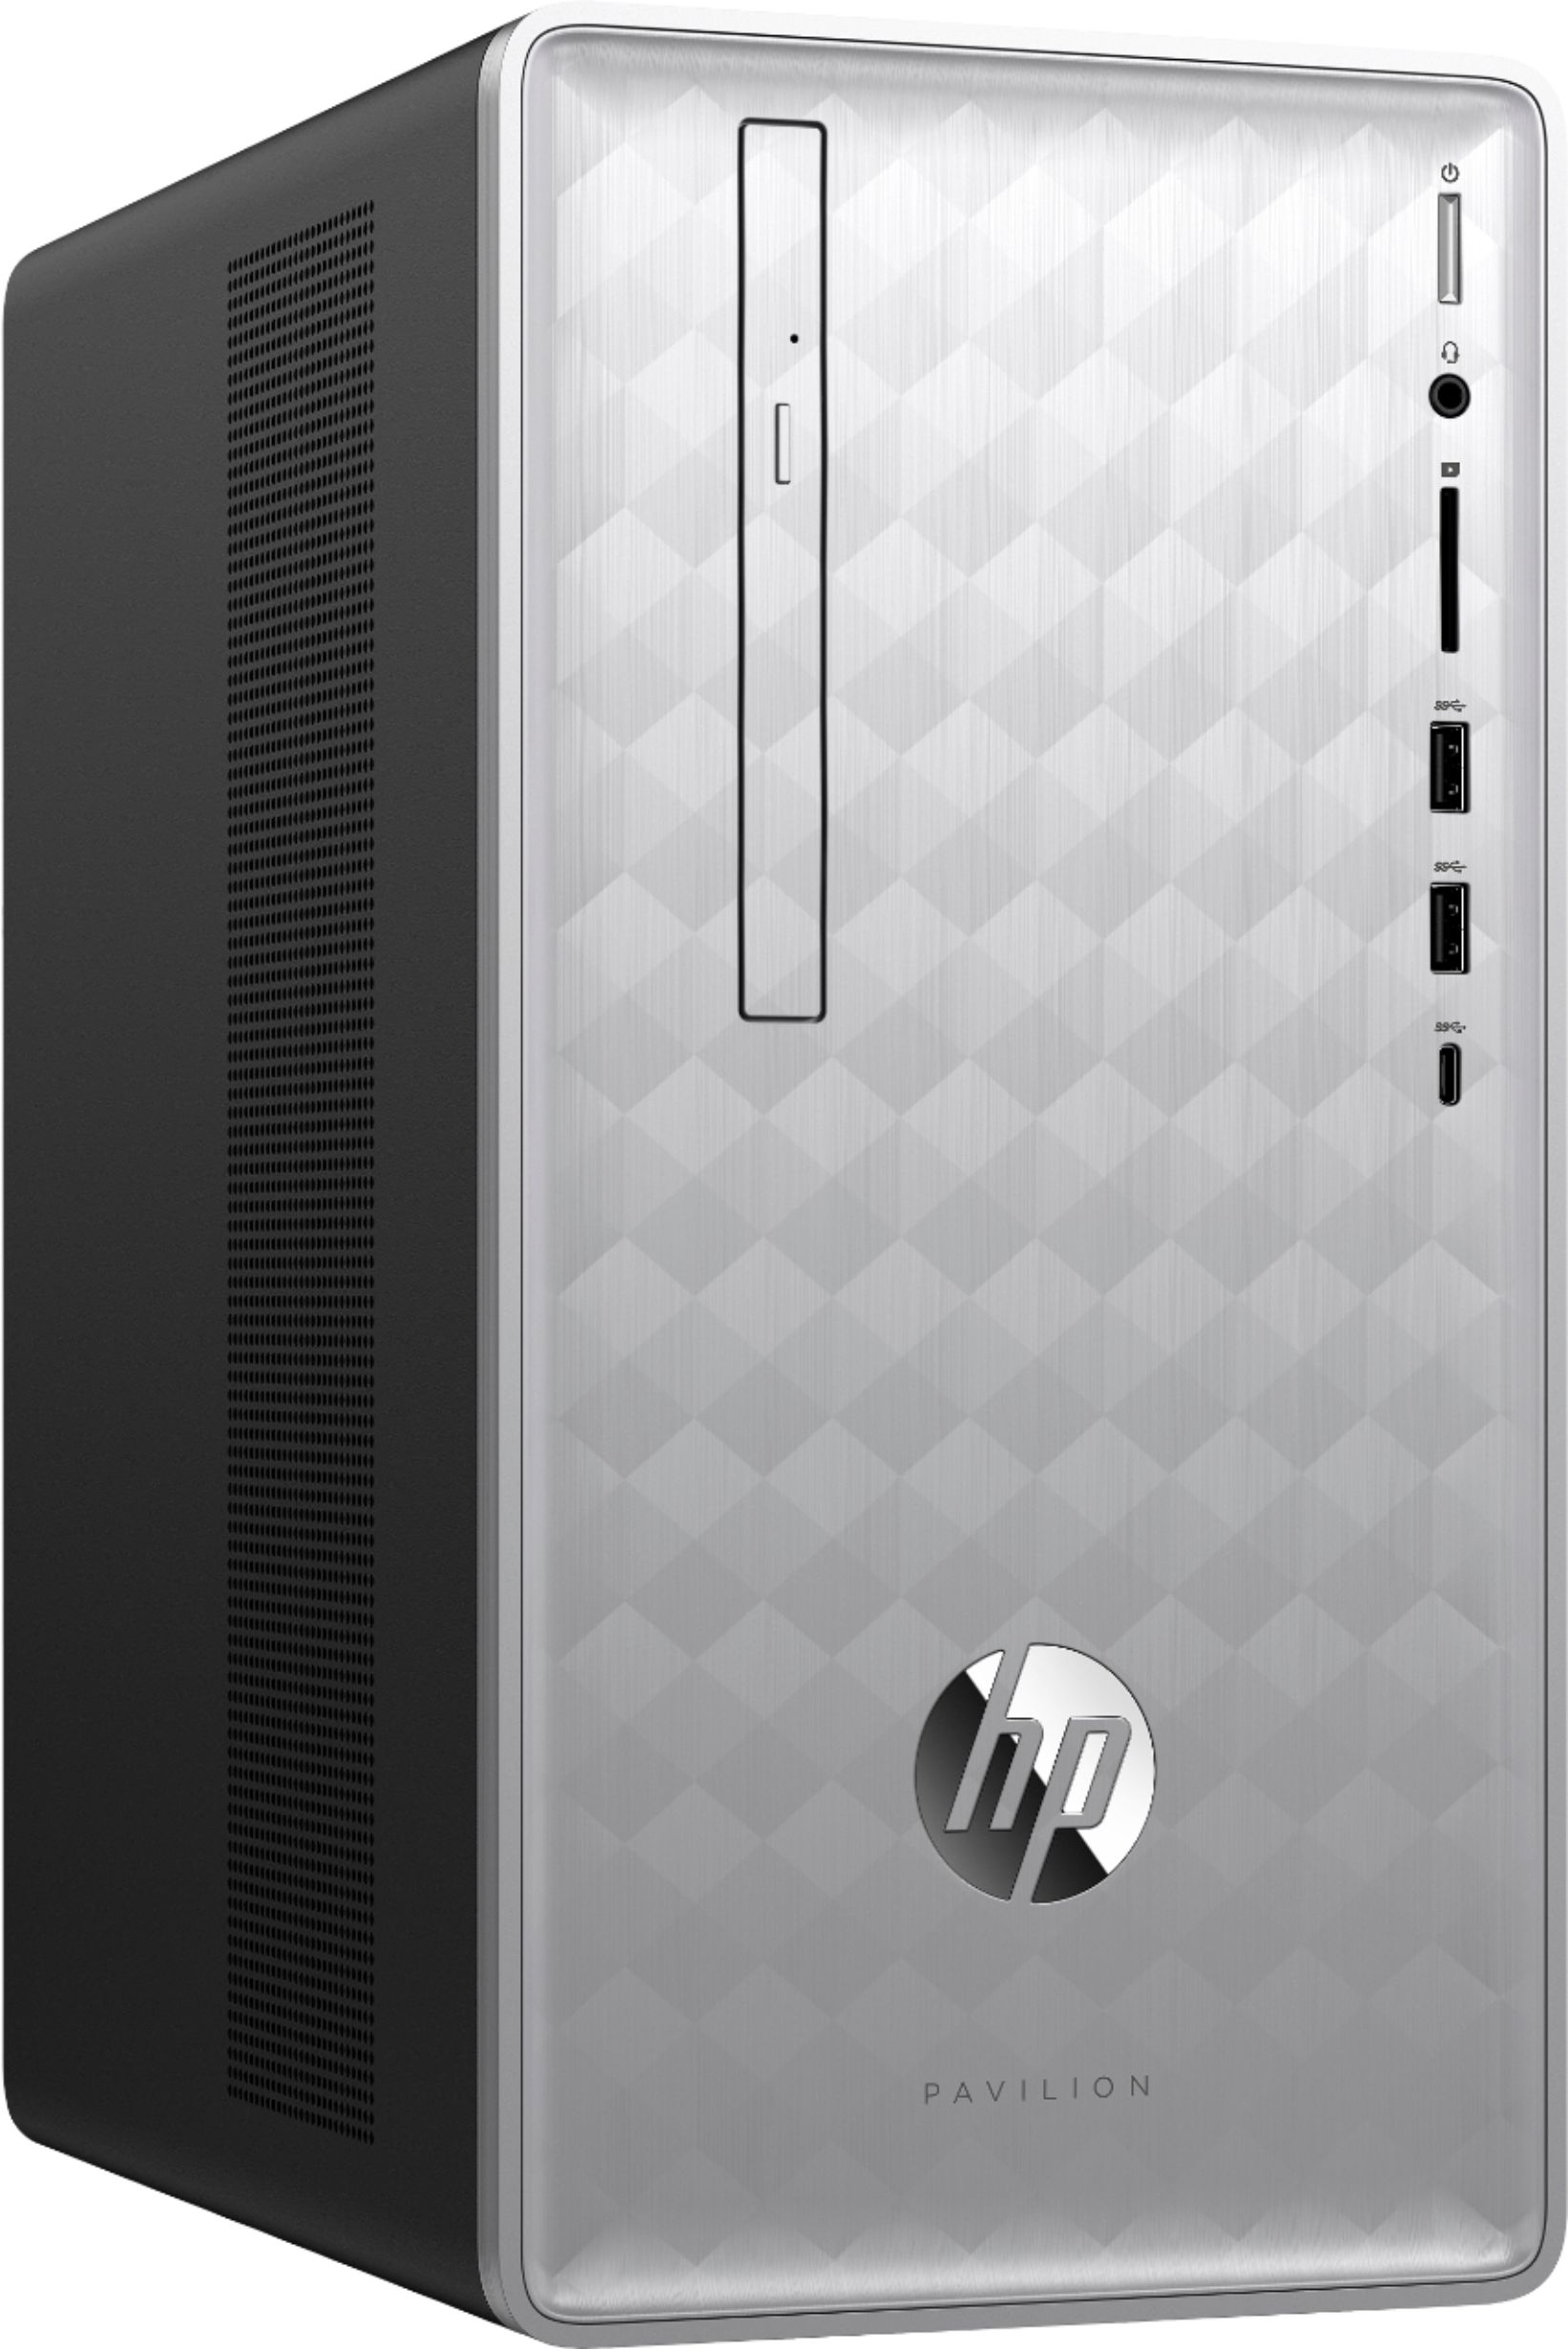 Angle Zoom. Geek Squad Certified Refurbished Pavilion Desktop - Intel Core i3 - 8GB Memory - 1TB HDD + 128GB SSD - HP Finish In Natural Silver.